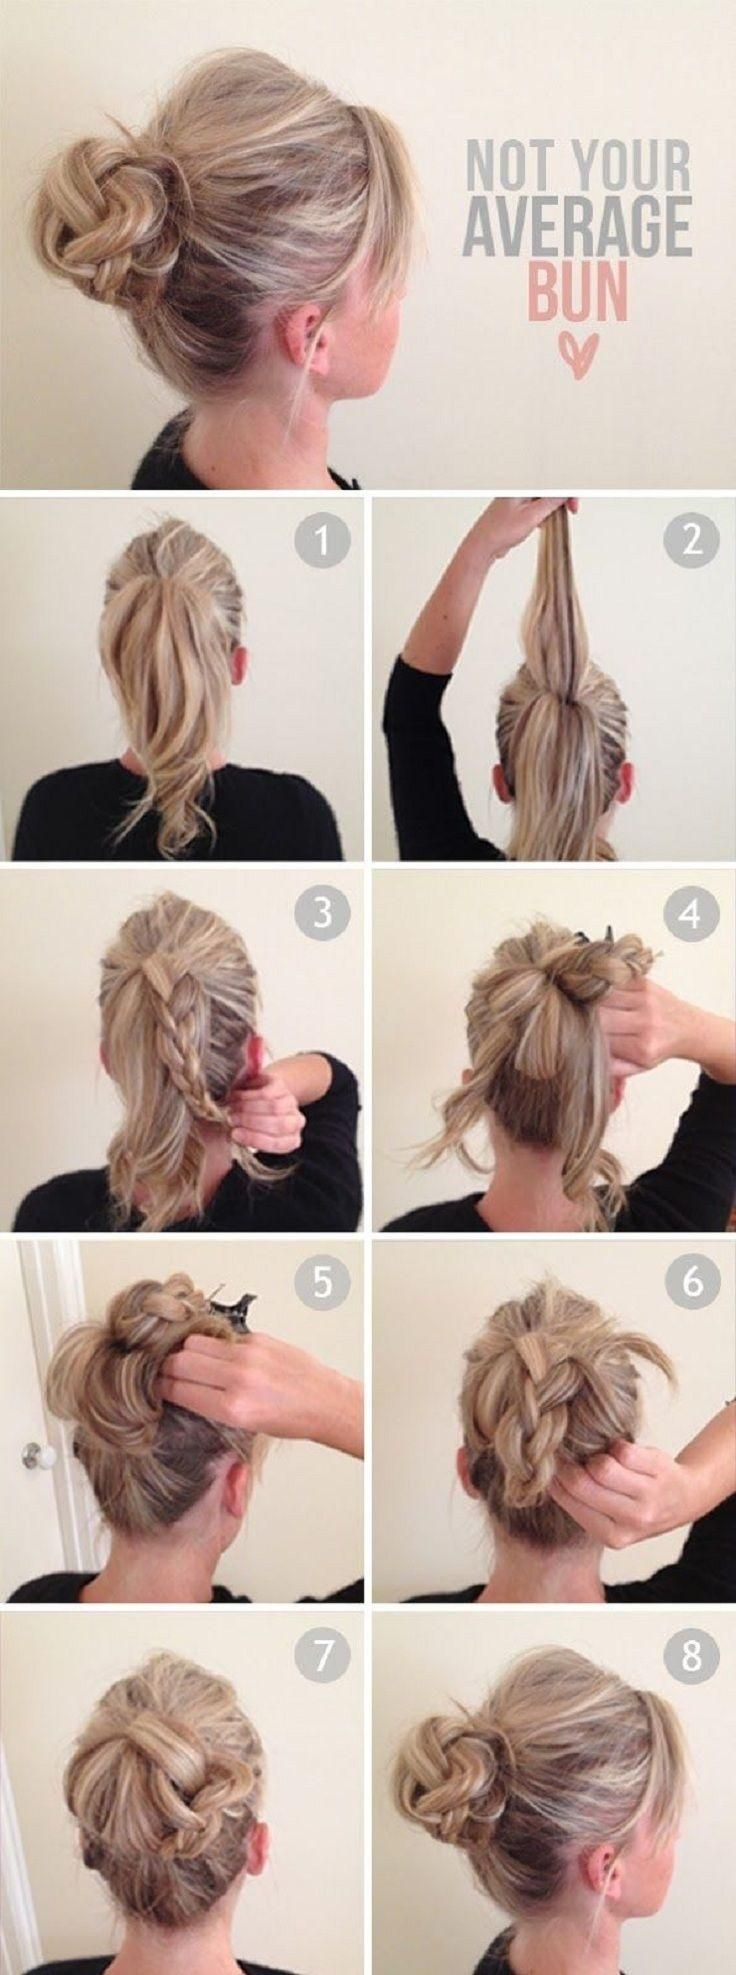 10 Ways To Make Cute Everyday Hairstyles Long Hair Tutorials Hair